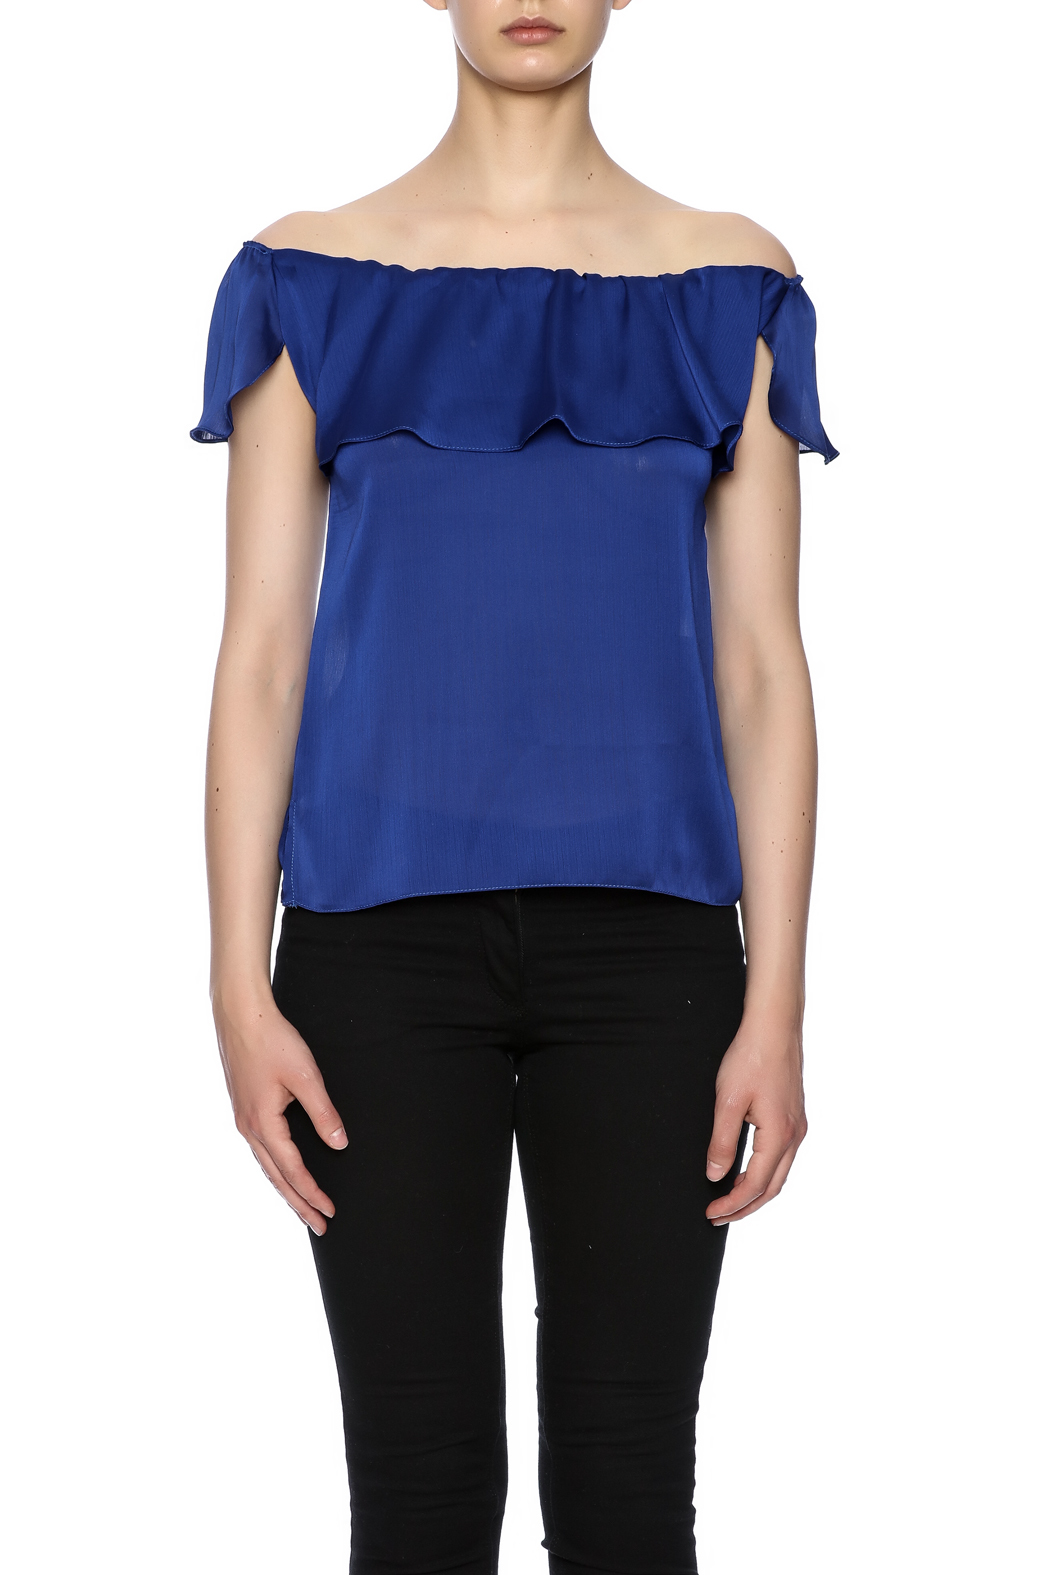 K&D London Off Shoulder Top - Side Cropped Image